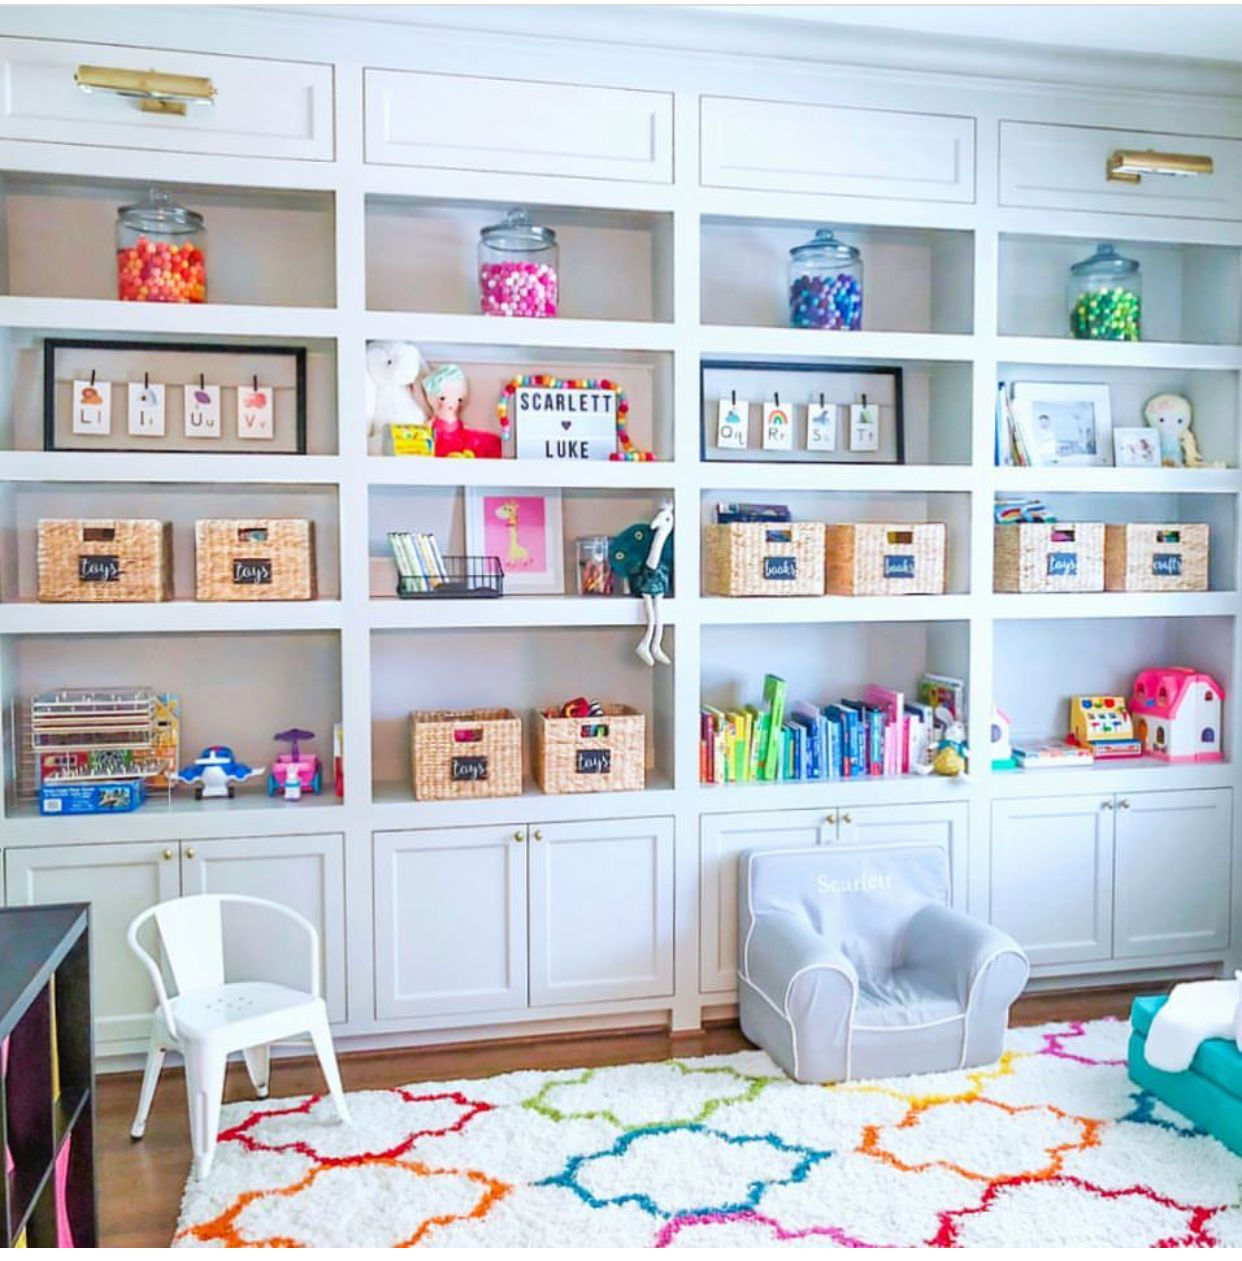 Dream Kids Play Room With Built In Shelves And Cabinets Home